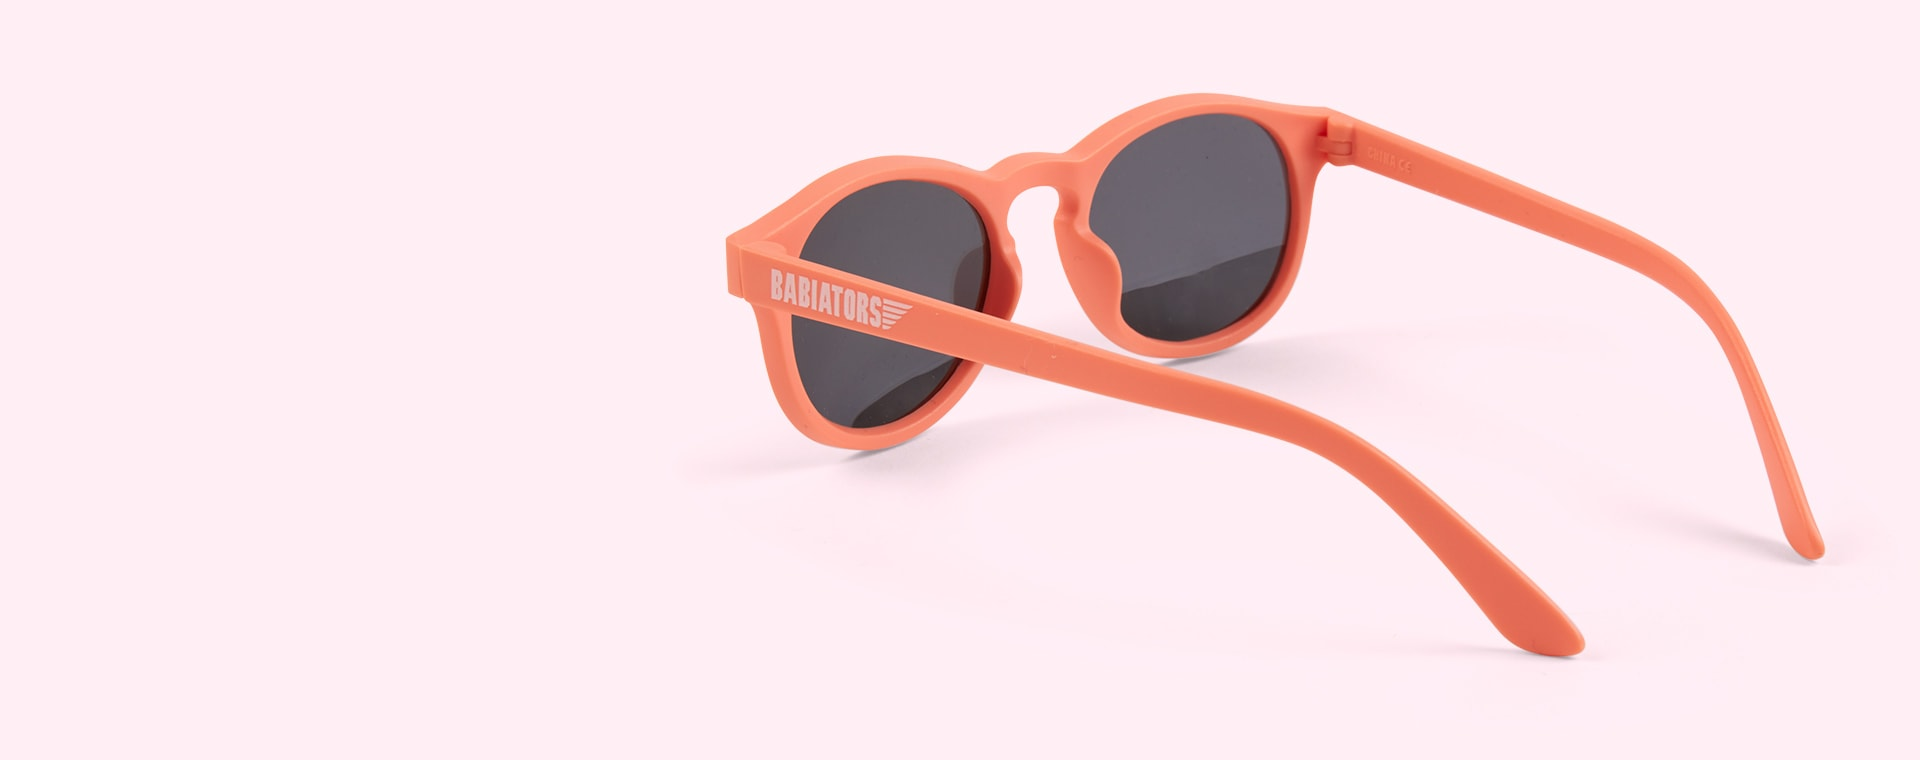 The Weekender Babiators Blue Series Keyhole sunglasses